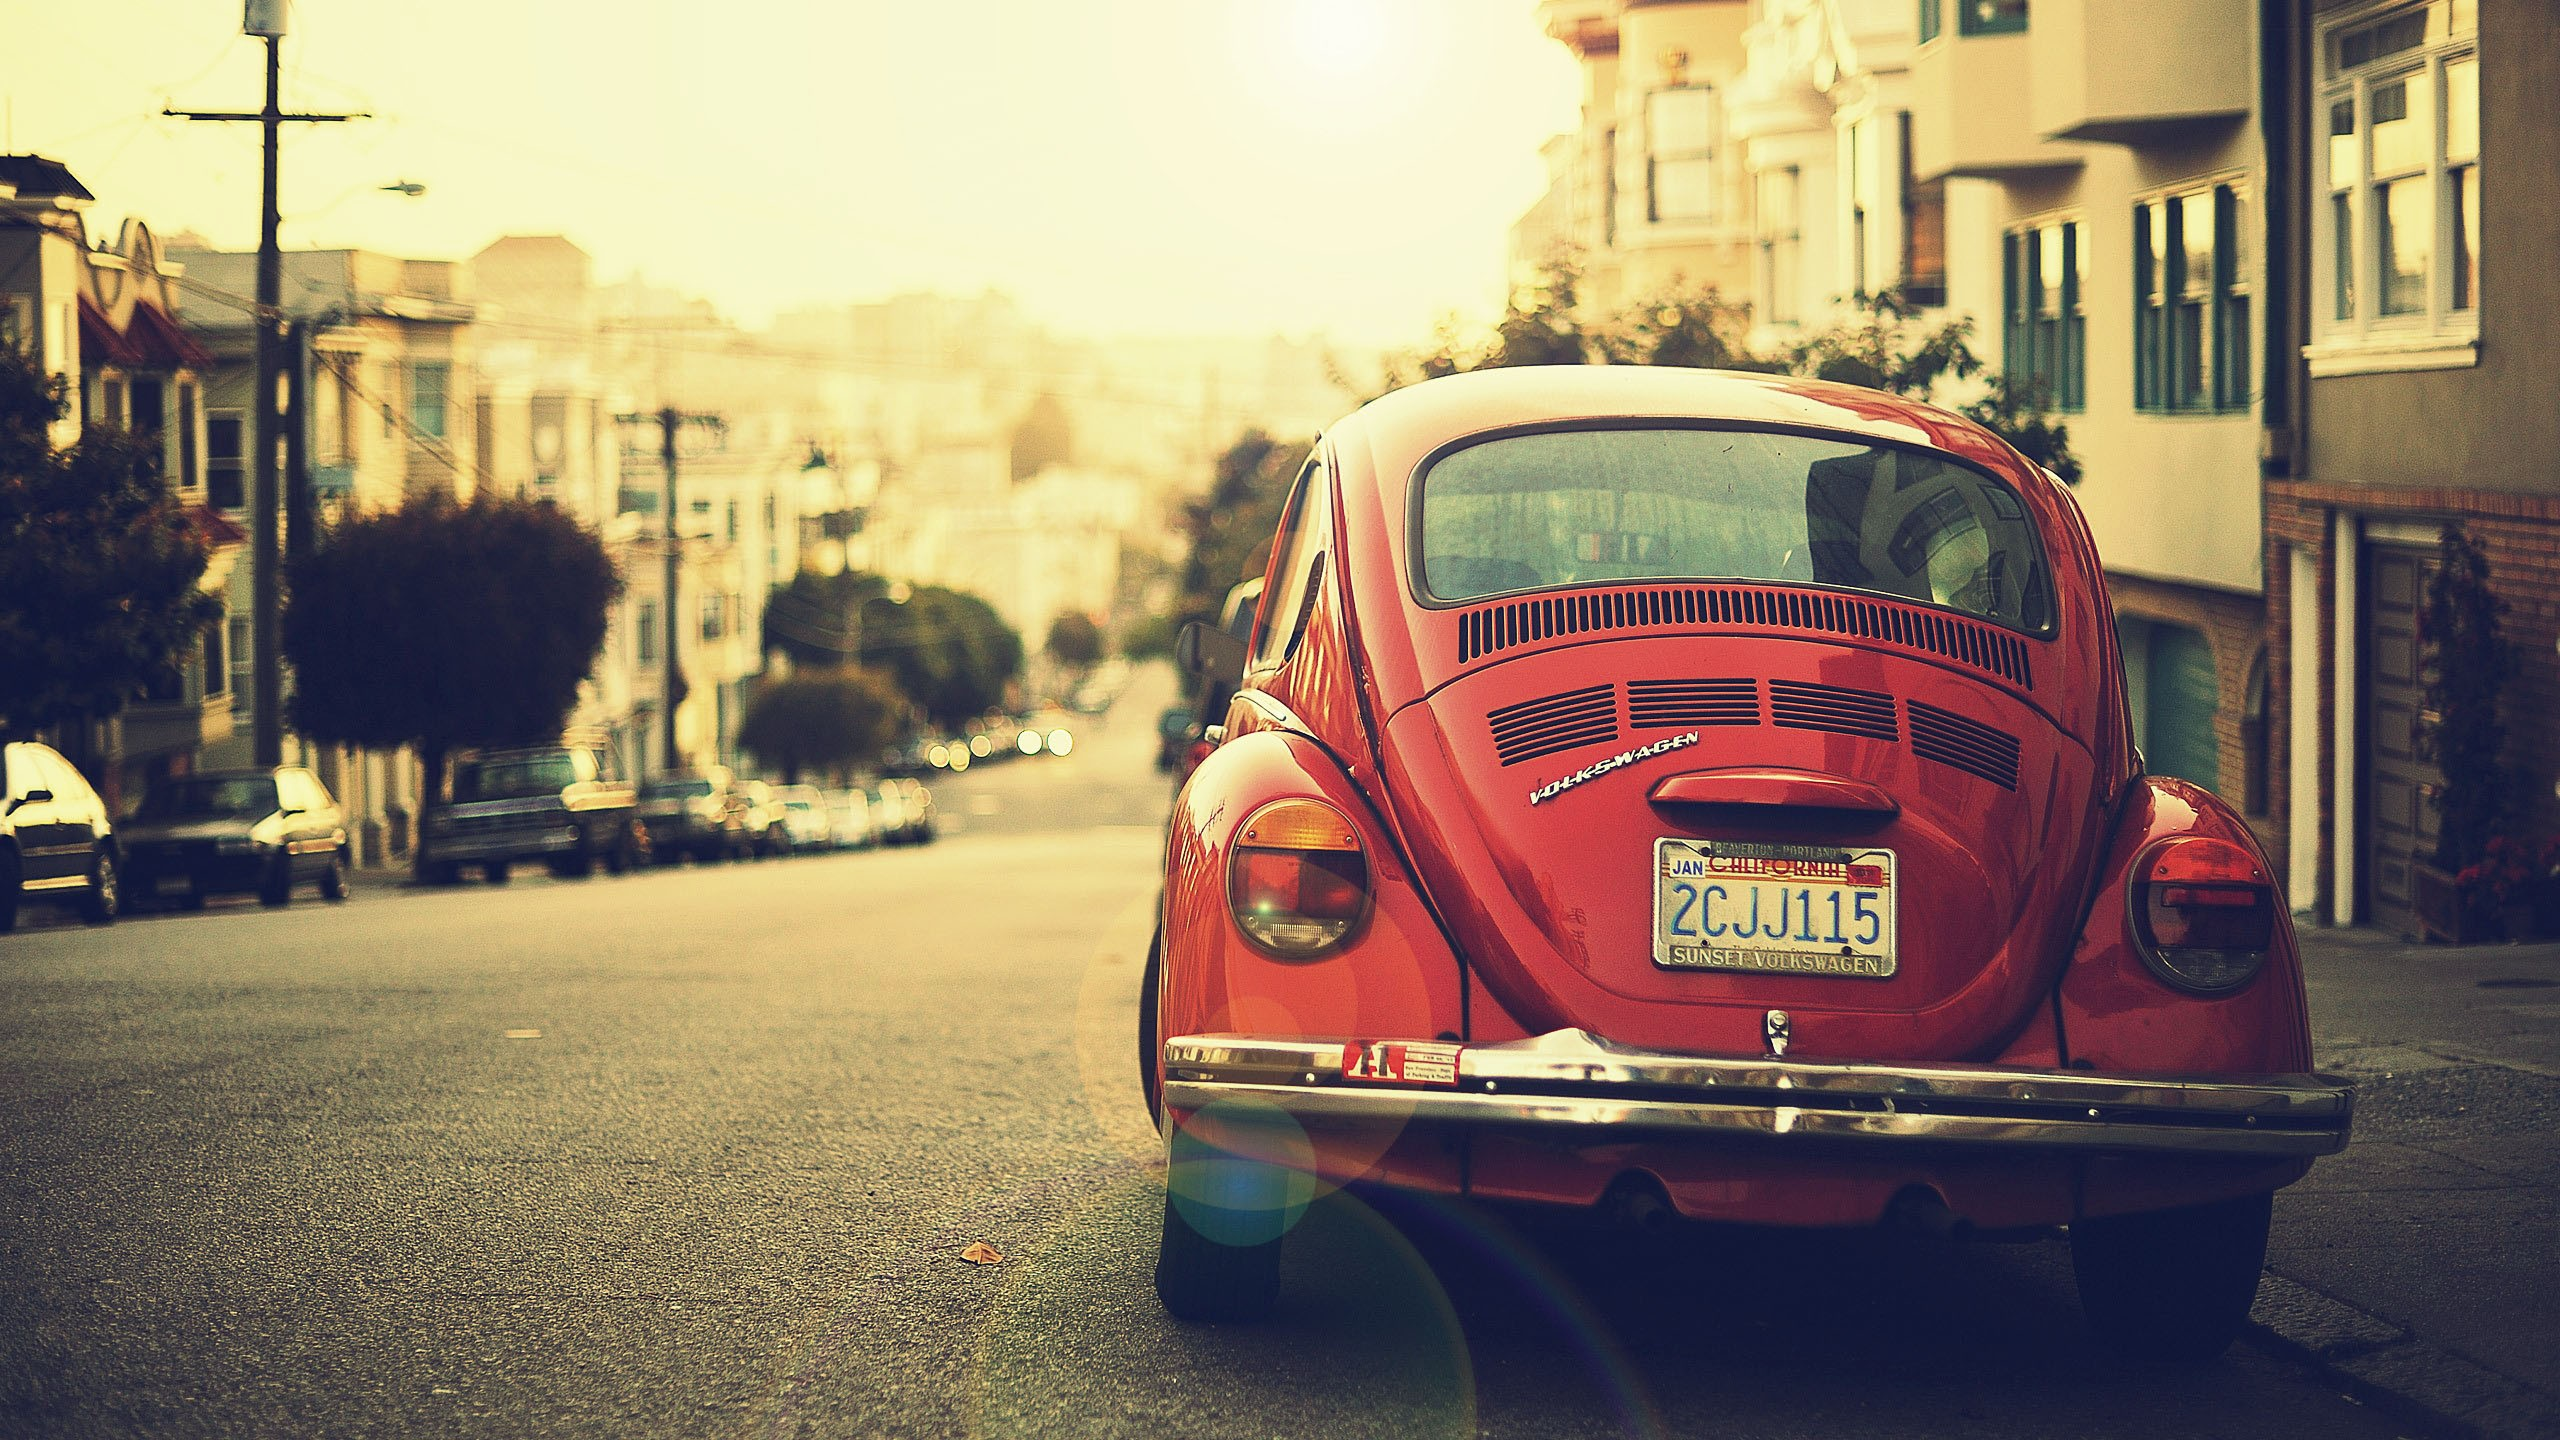 The Old VolkSwagen - Vintage Photography